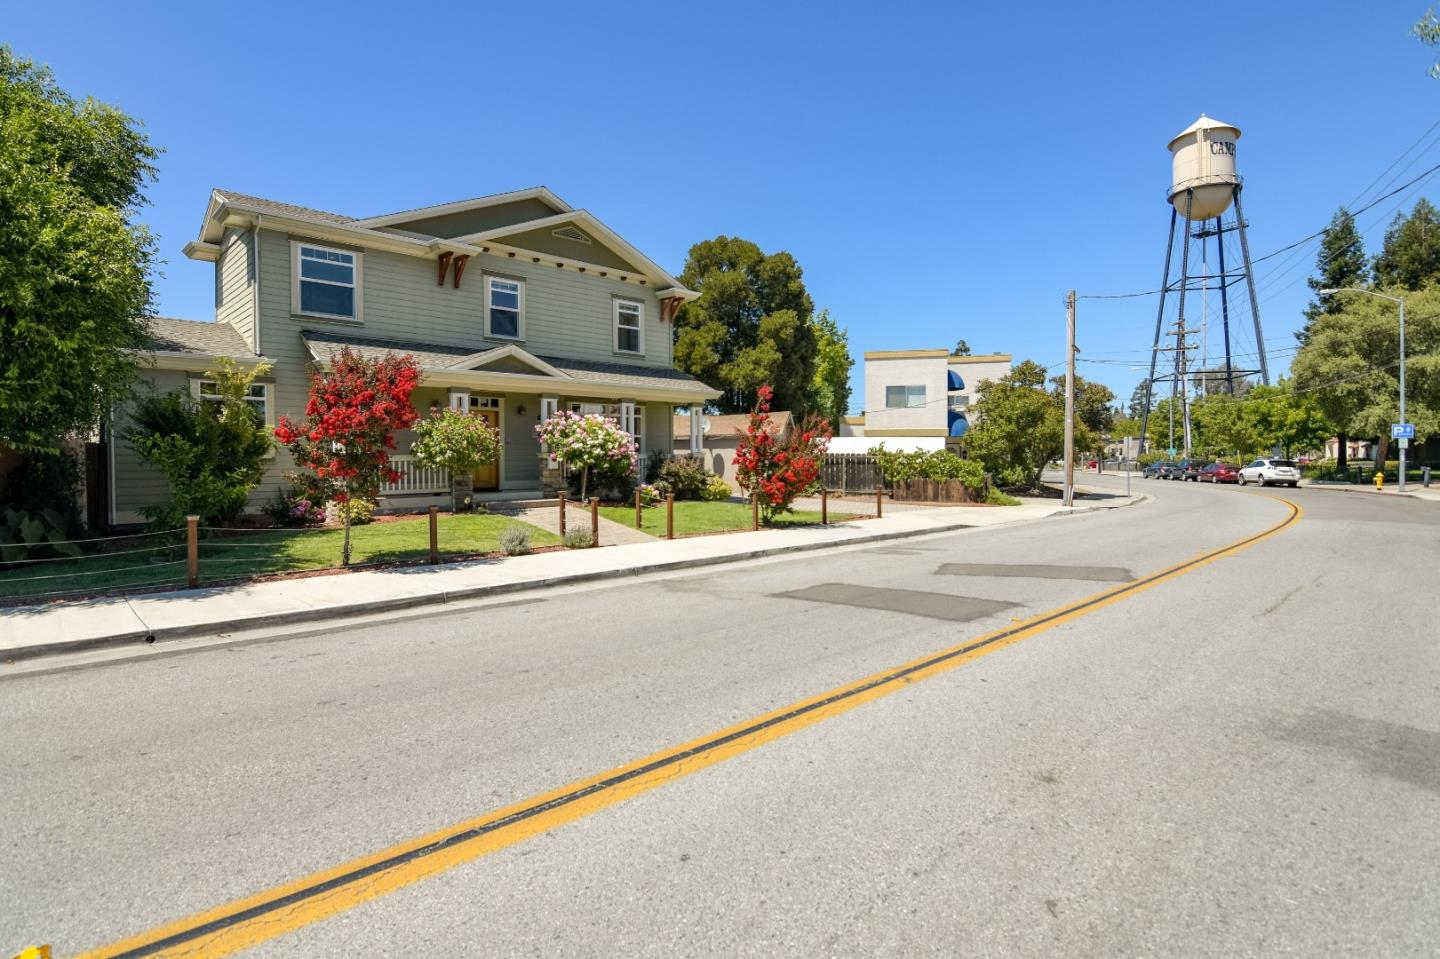 133 So 1st Street Campbell, CA 95008 - MLS #: ML81717443